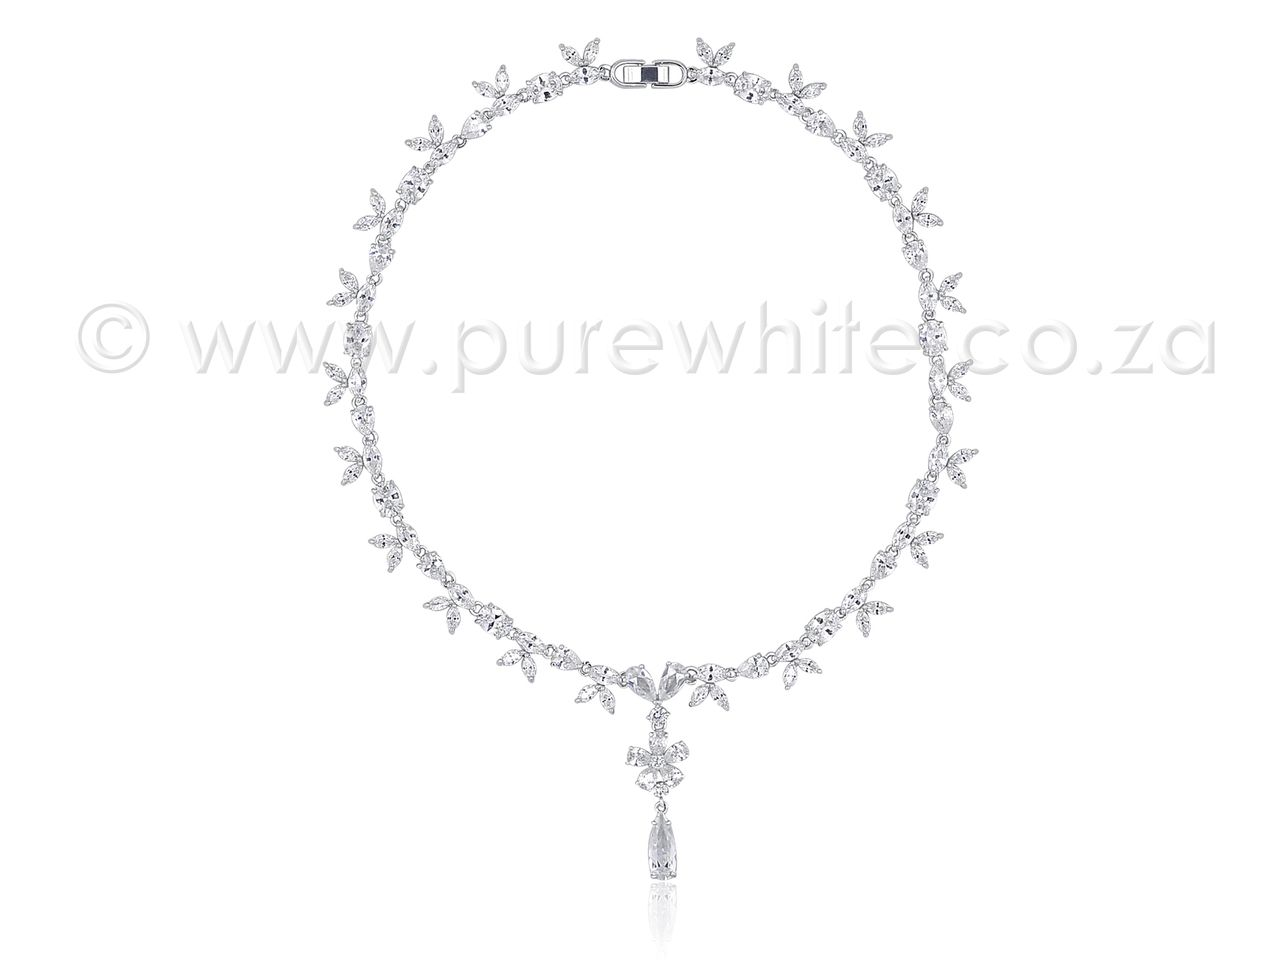 PURE WHITE - Feminine Cubic Zirconia Necklace 7-022, R2,229.01 (http://www.purewhite.co.za/feminine-cubic-zirconia-necklace-7-022/)